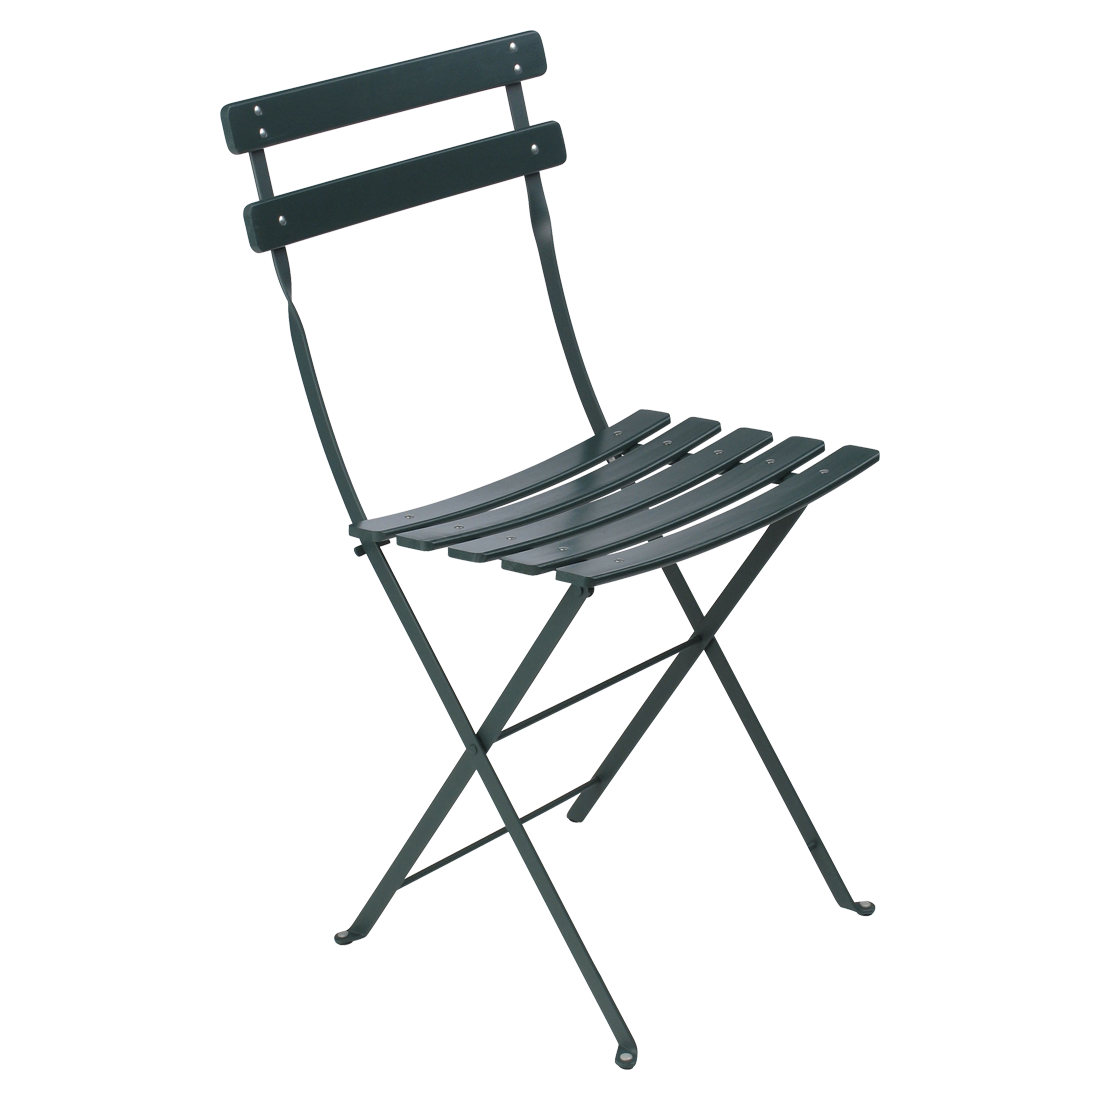 bistro classic chair metal chair outdoor furniture. Black Bedroom Furniture Sets. Home Design Ideas